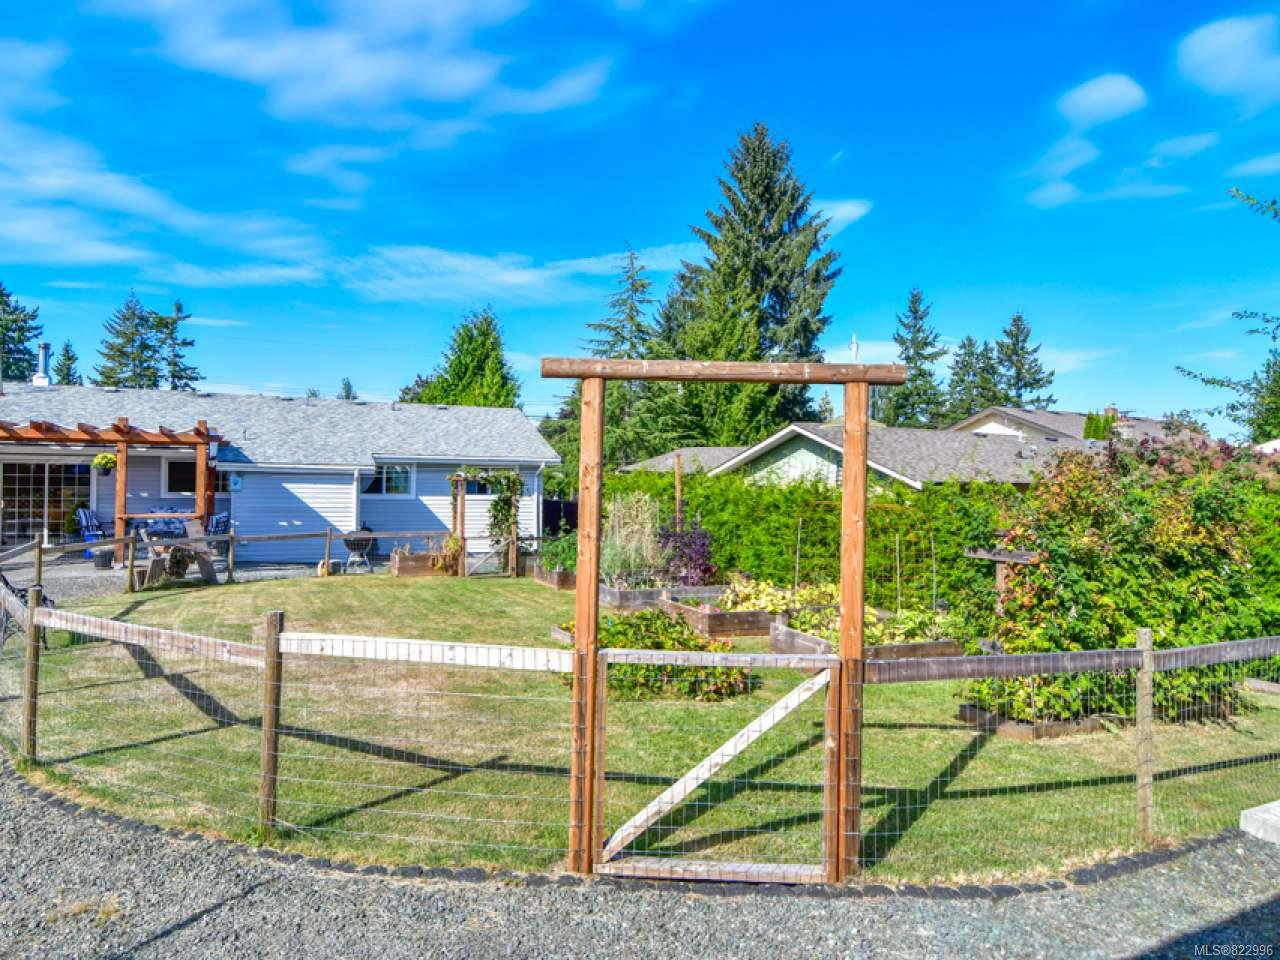 Photo 8: Photos: 691 Holm Rd in CAMPBELL RIVER: CR Willow Point House for sale (Campbell River)  : MLS®# 822996